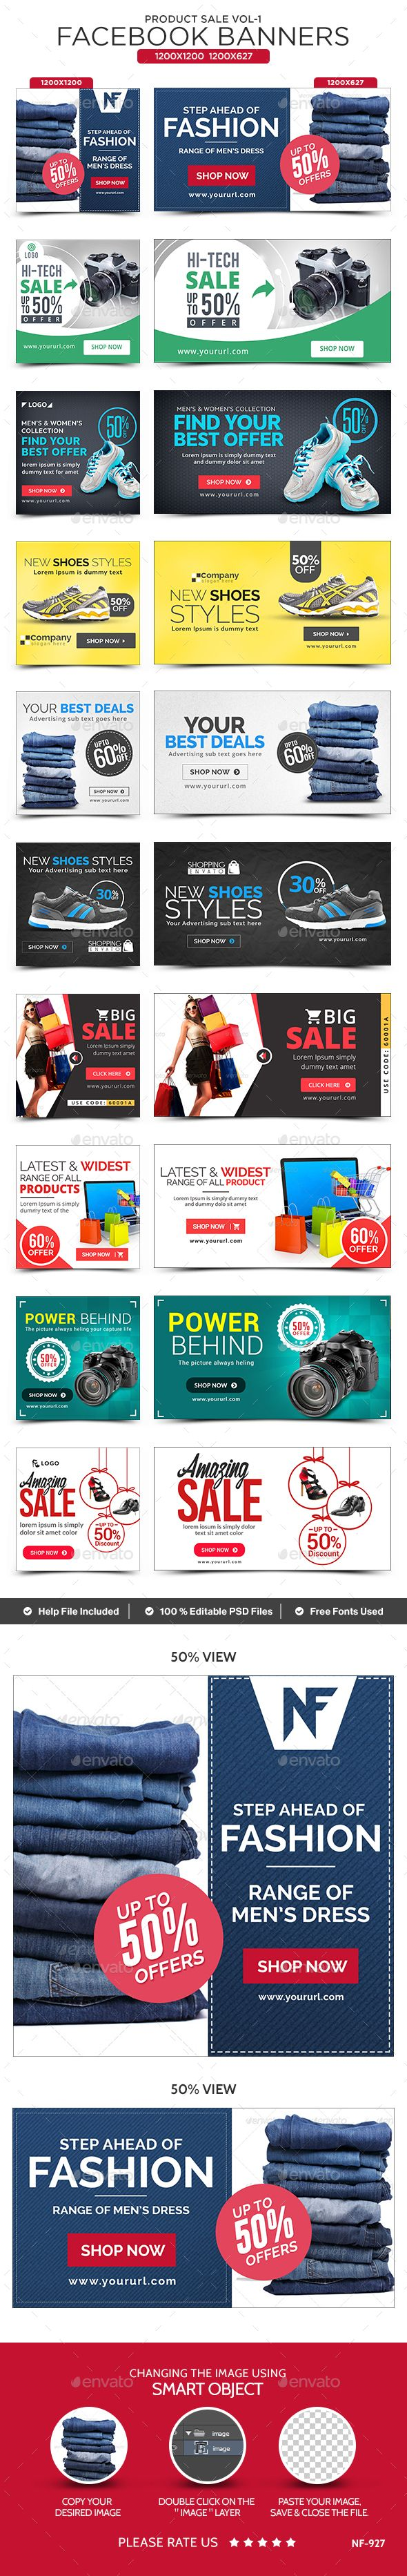 product sale facebook banners 10 designs template psd ad download